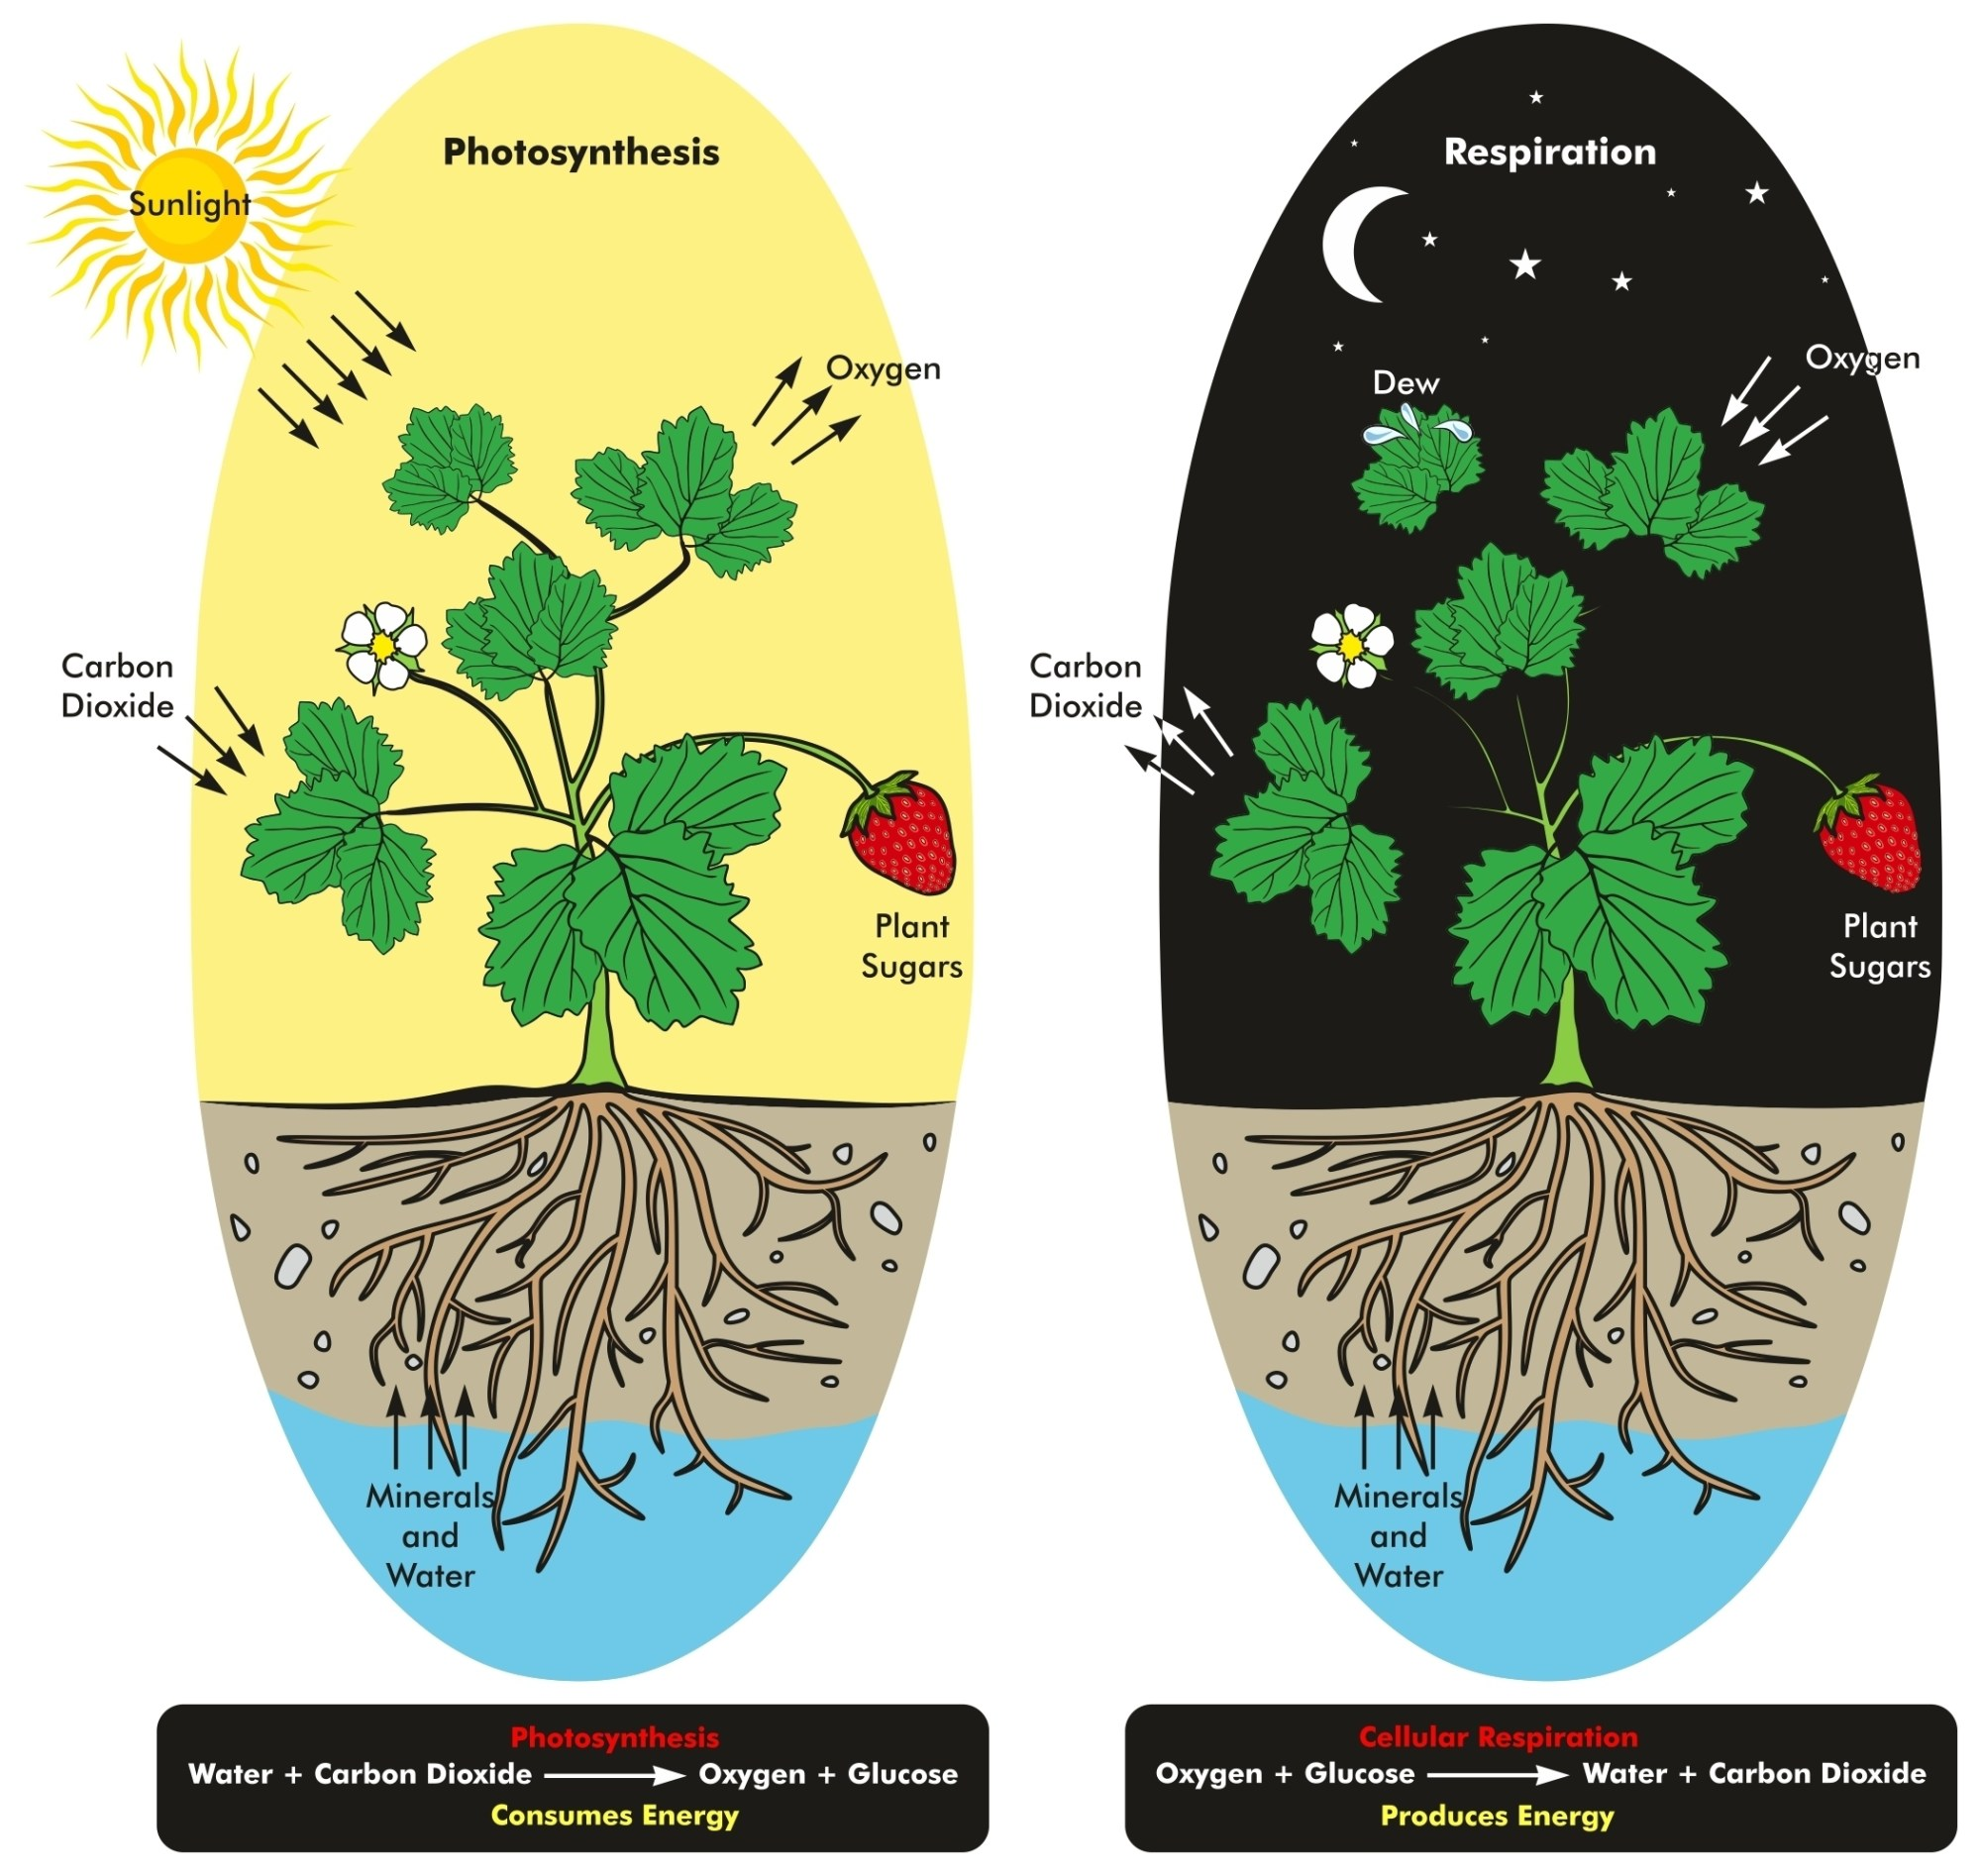 hight resolution of photosynthesis and cellular respiration process of plant during day and night time